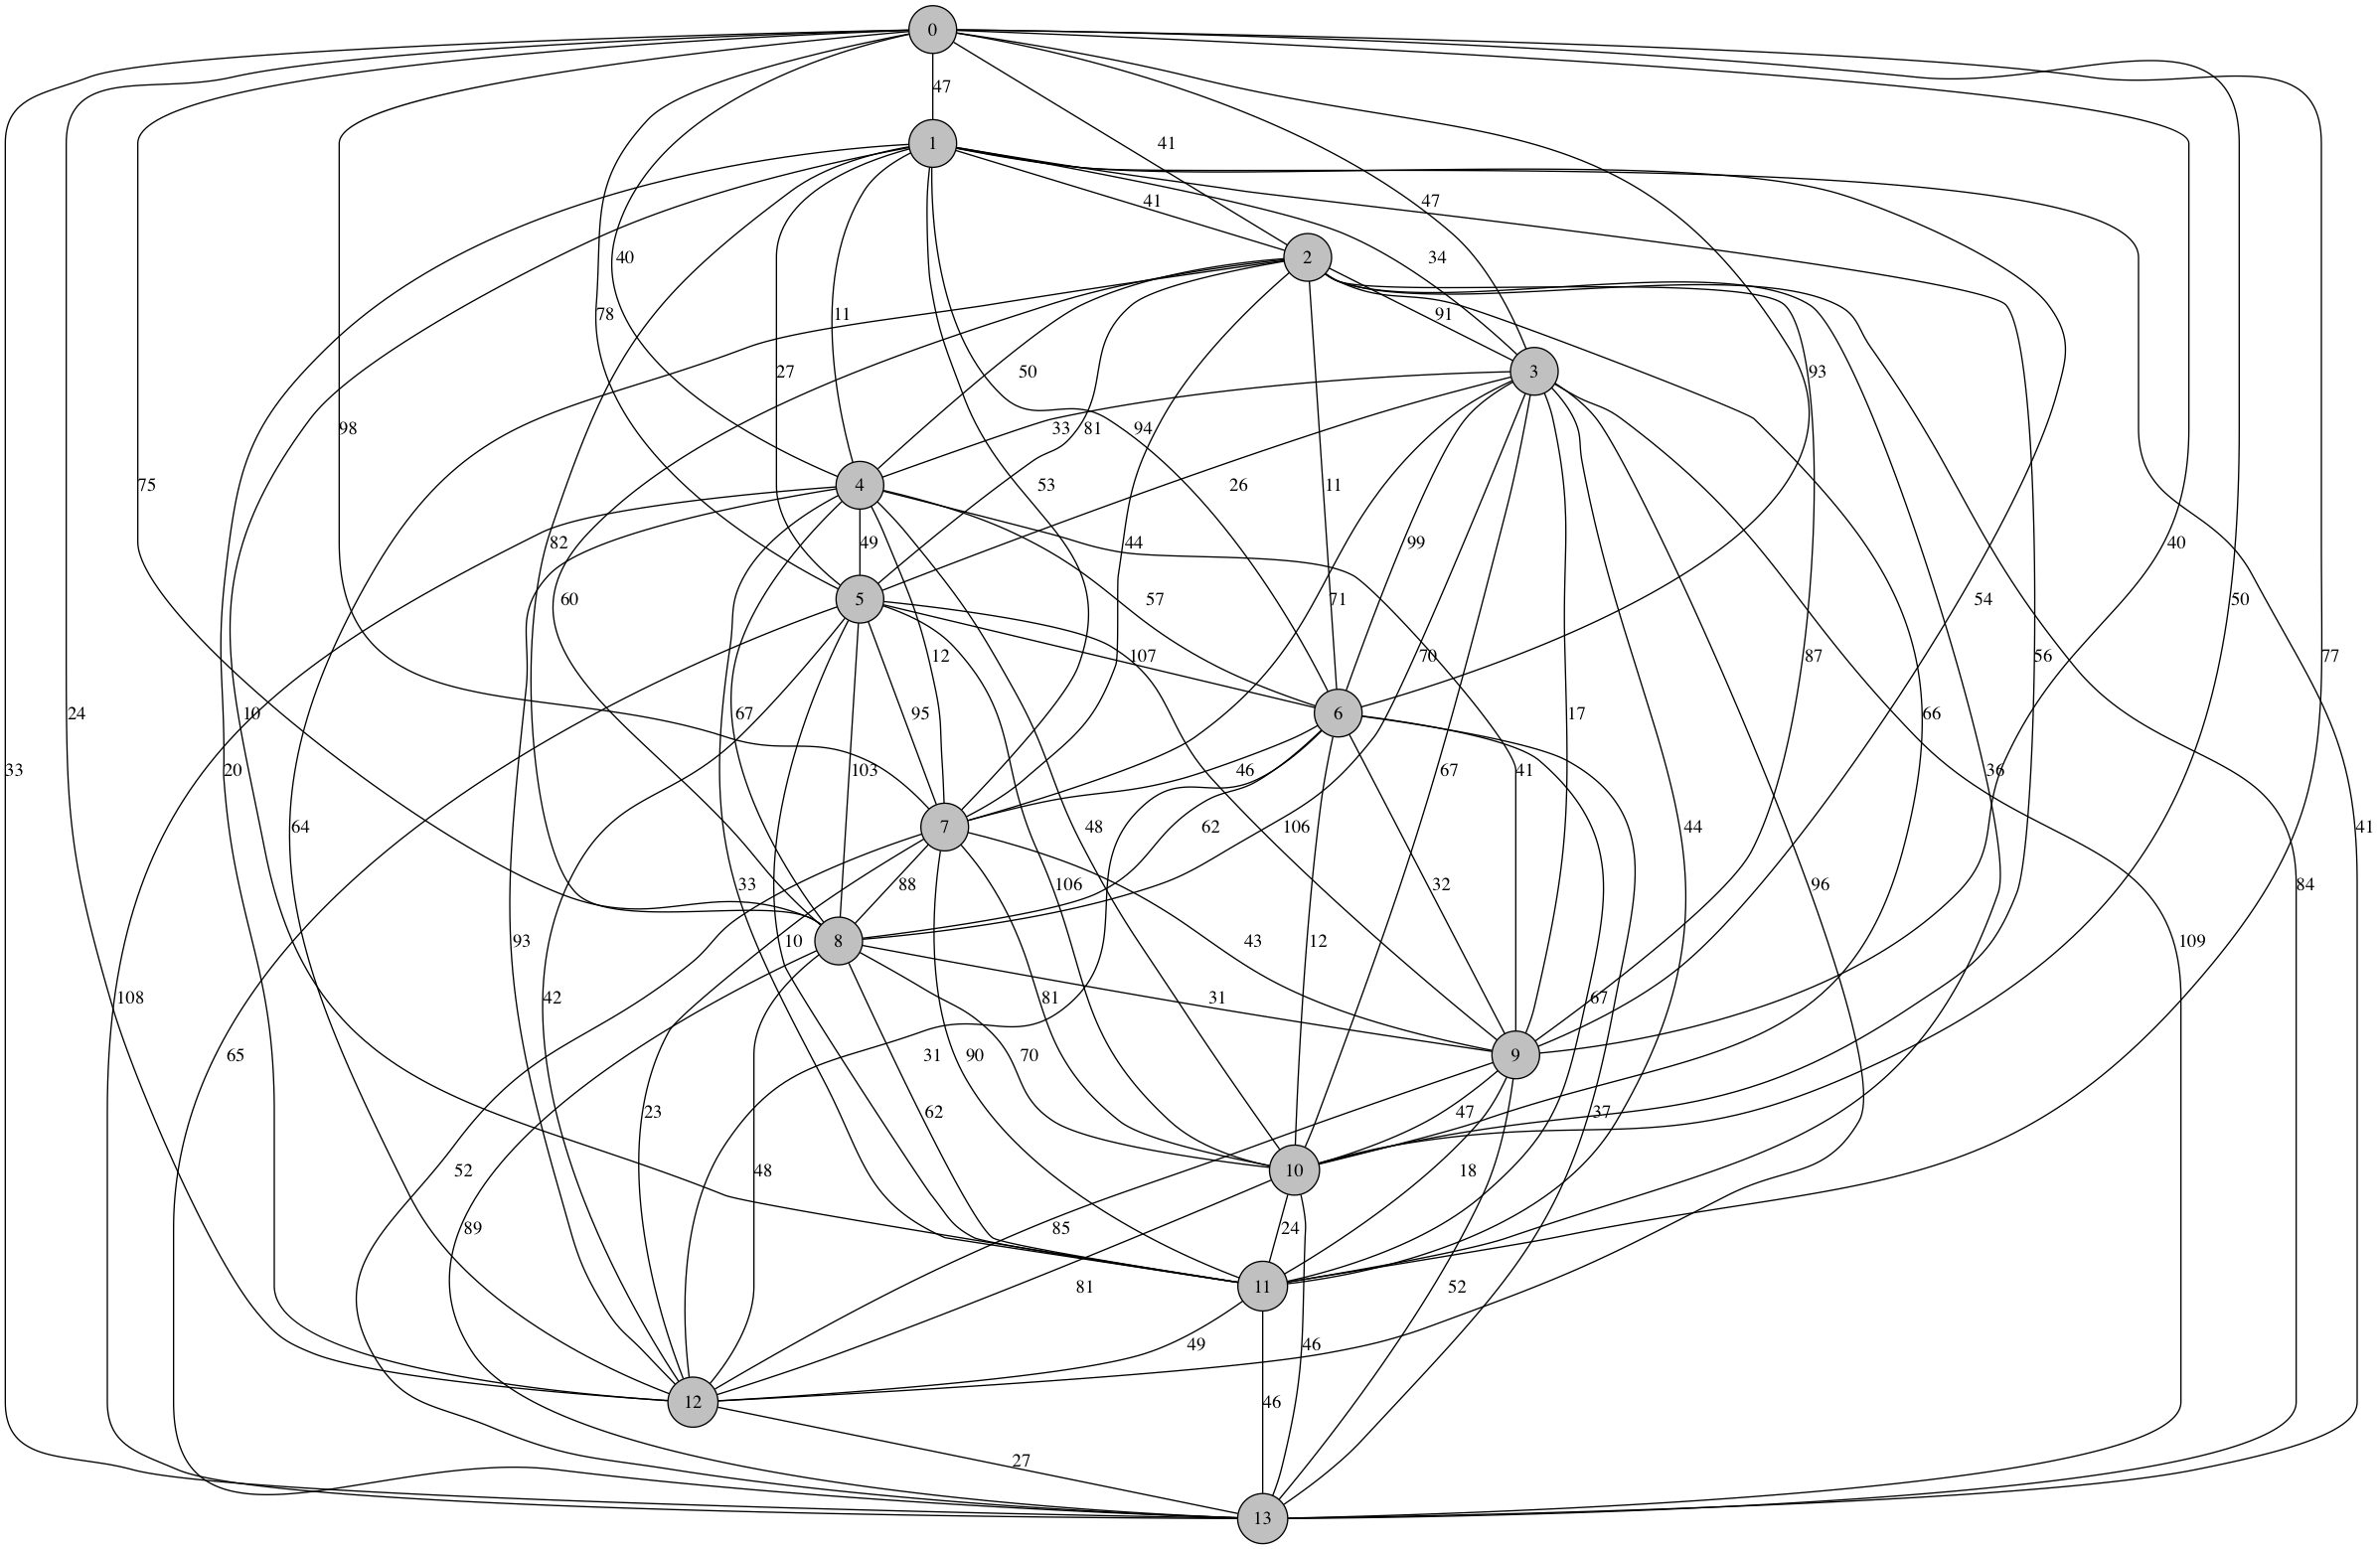 TSP graph with 14 nodes